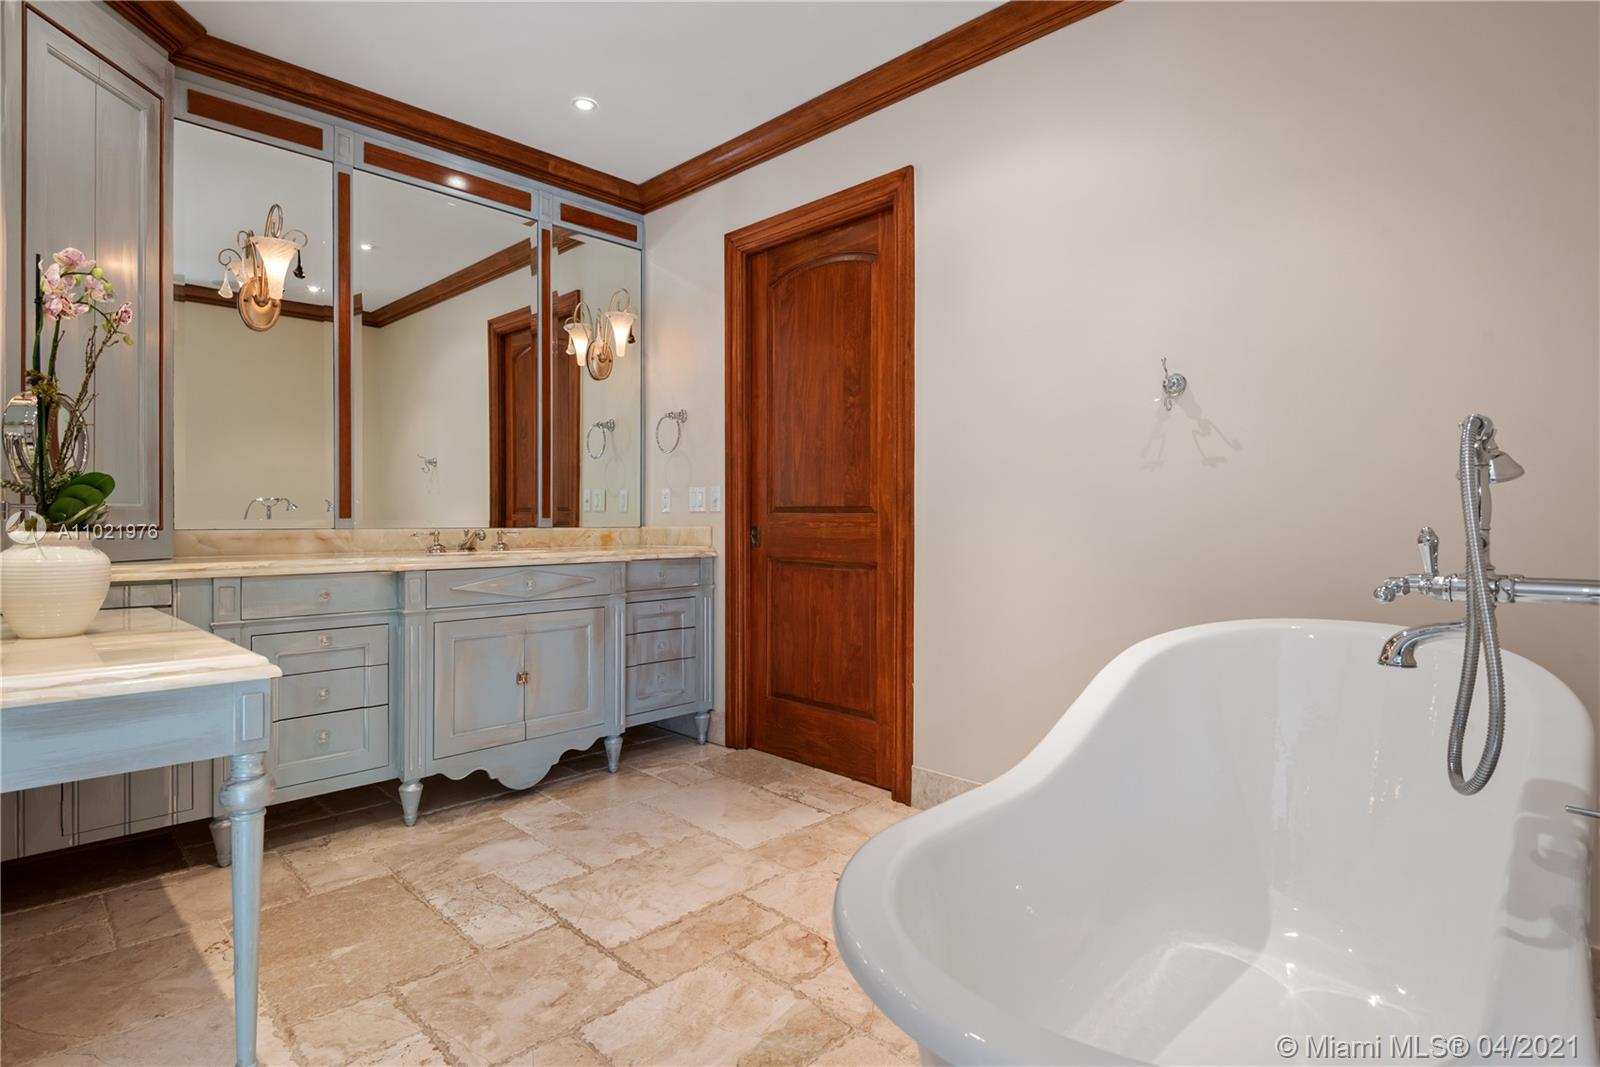 Master Bath with French vanities.